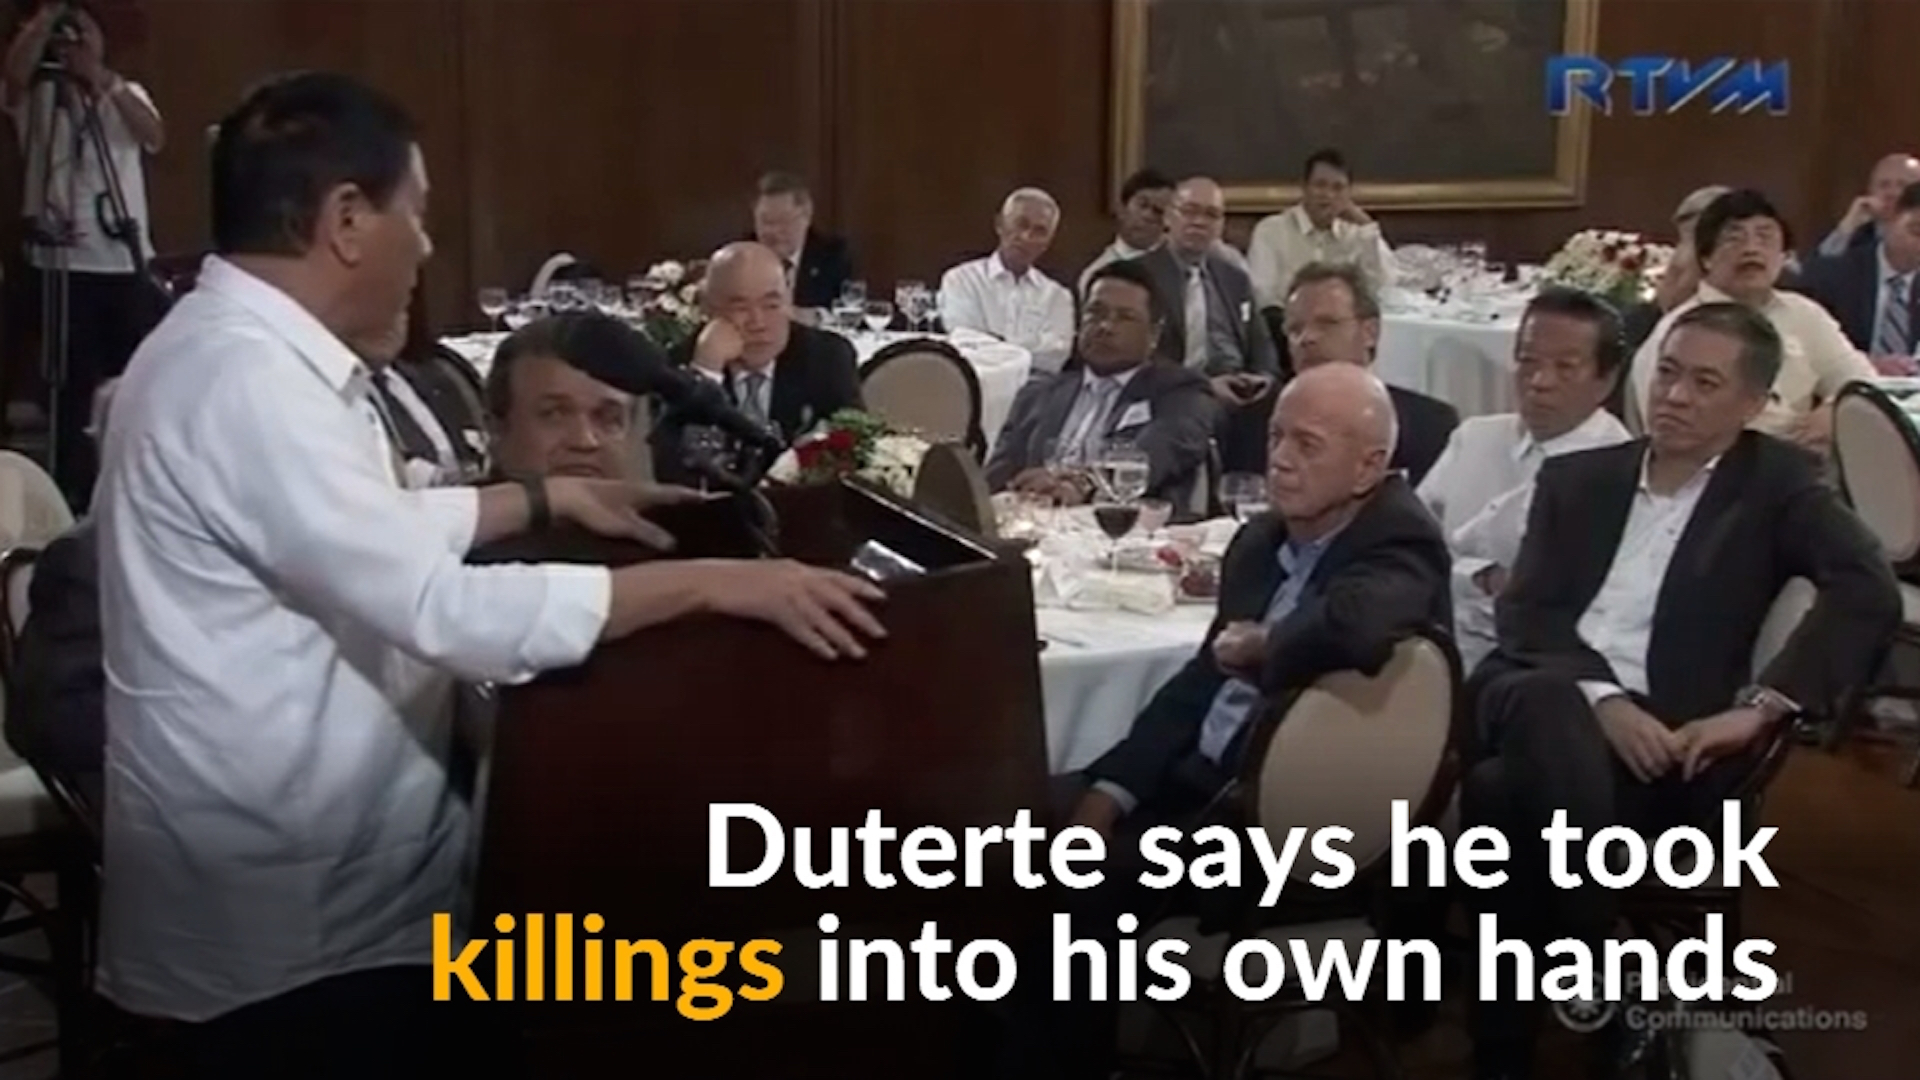 Duterte keeps admitting to killing people. His supporters keep shrugging it off.